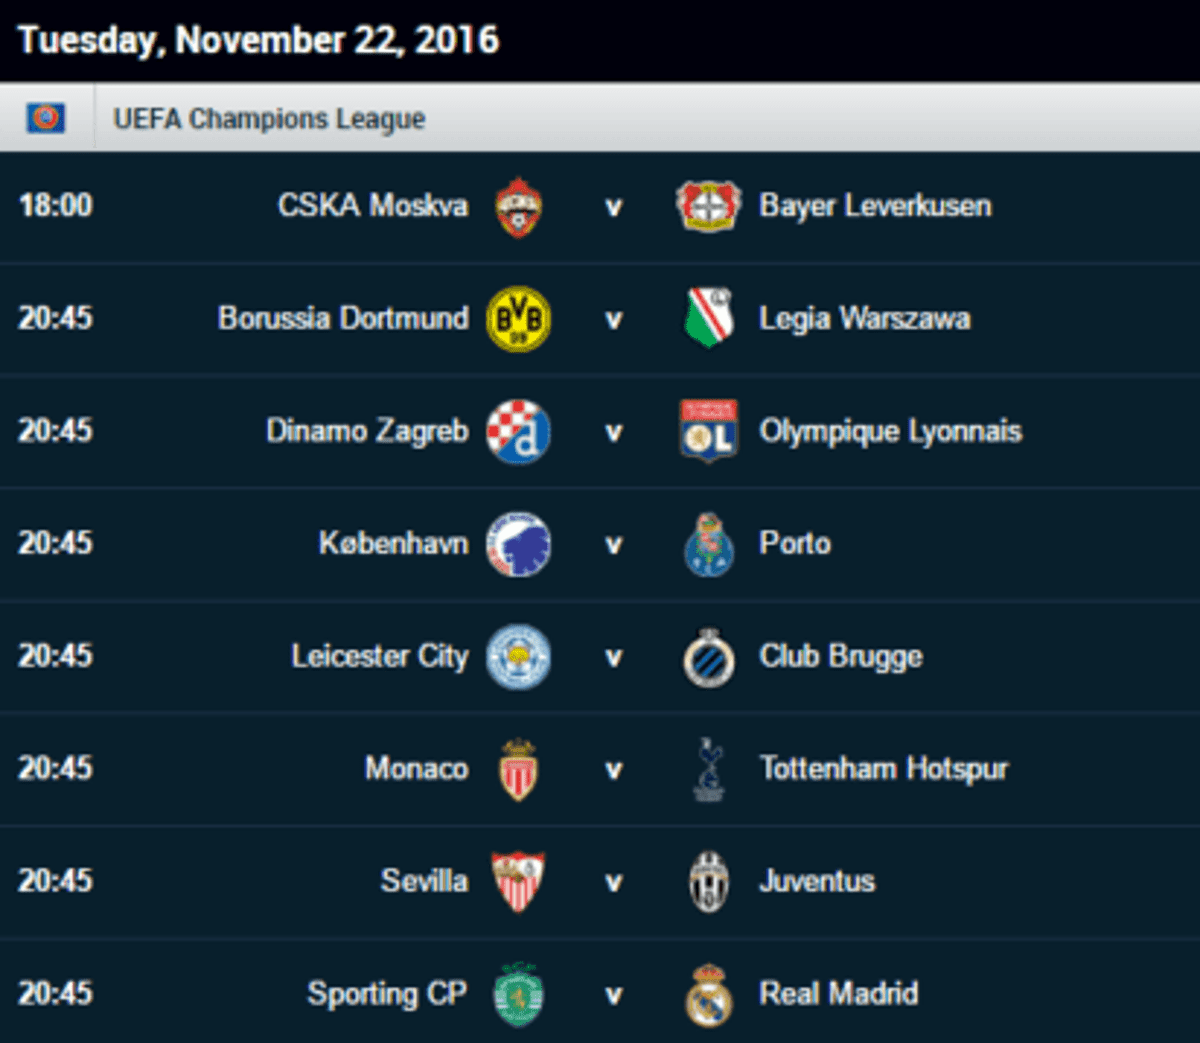 uefa champions league fixtures vanguard news uefa champions league fixtures